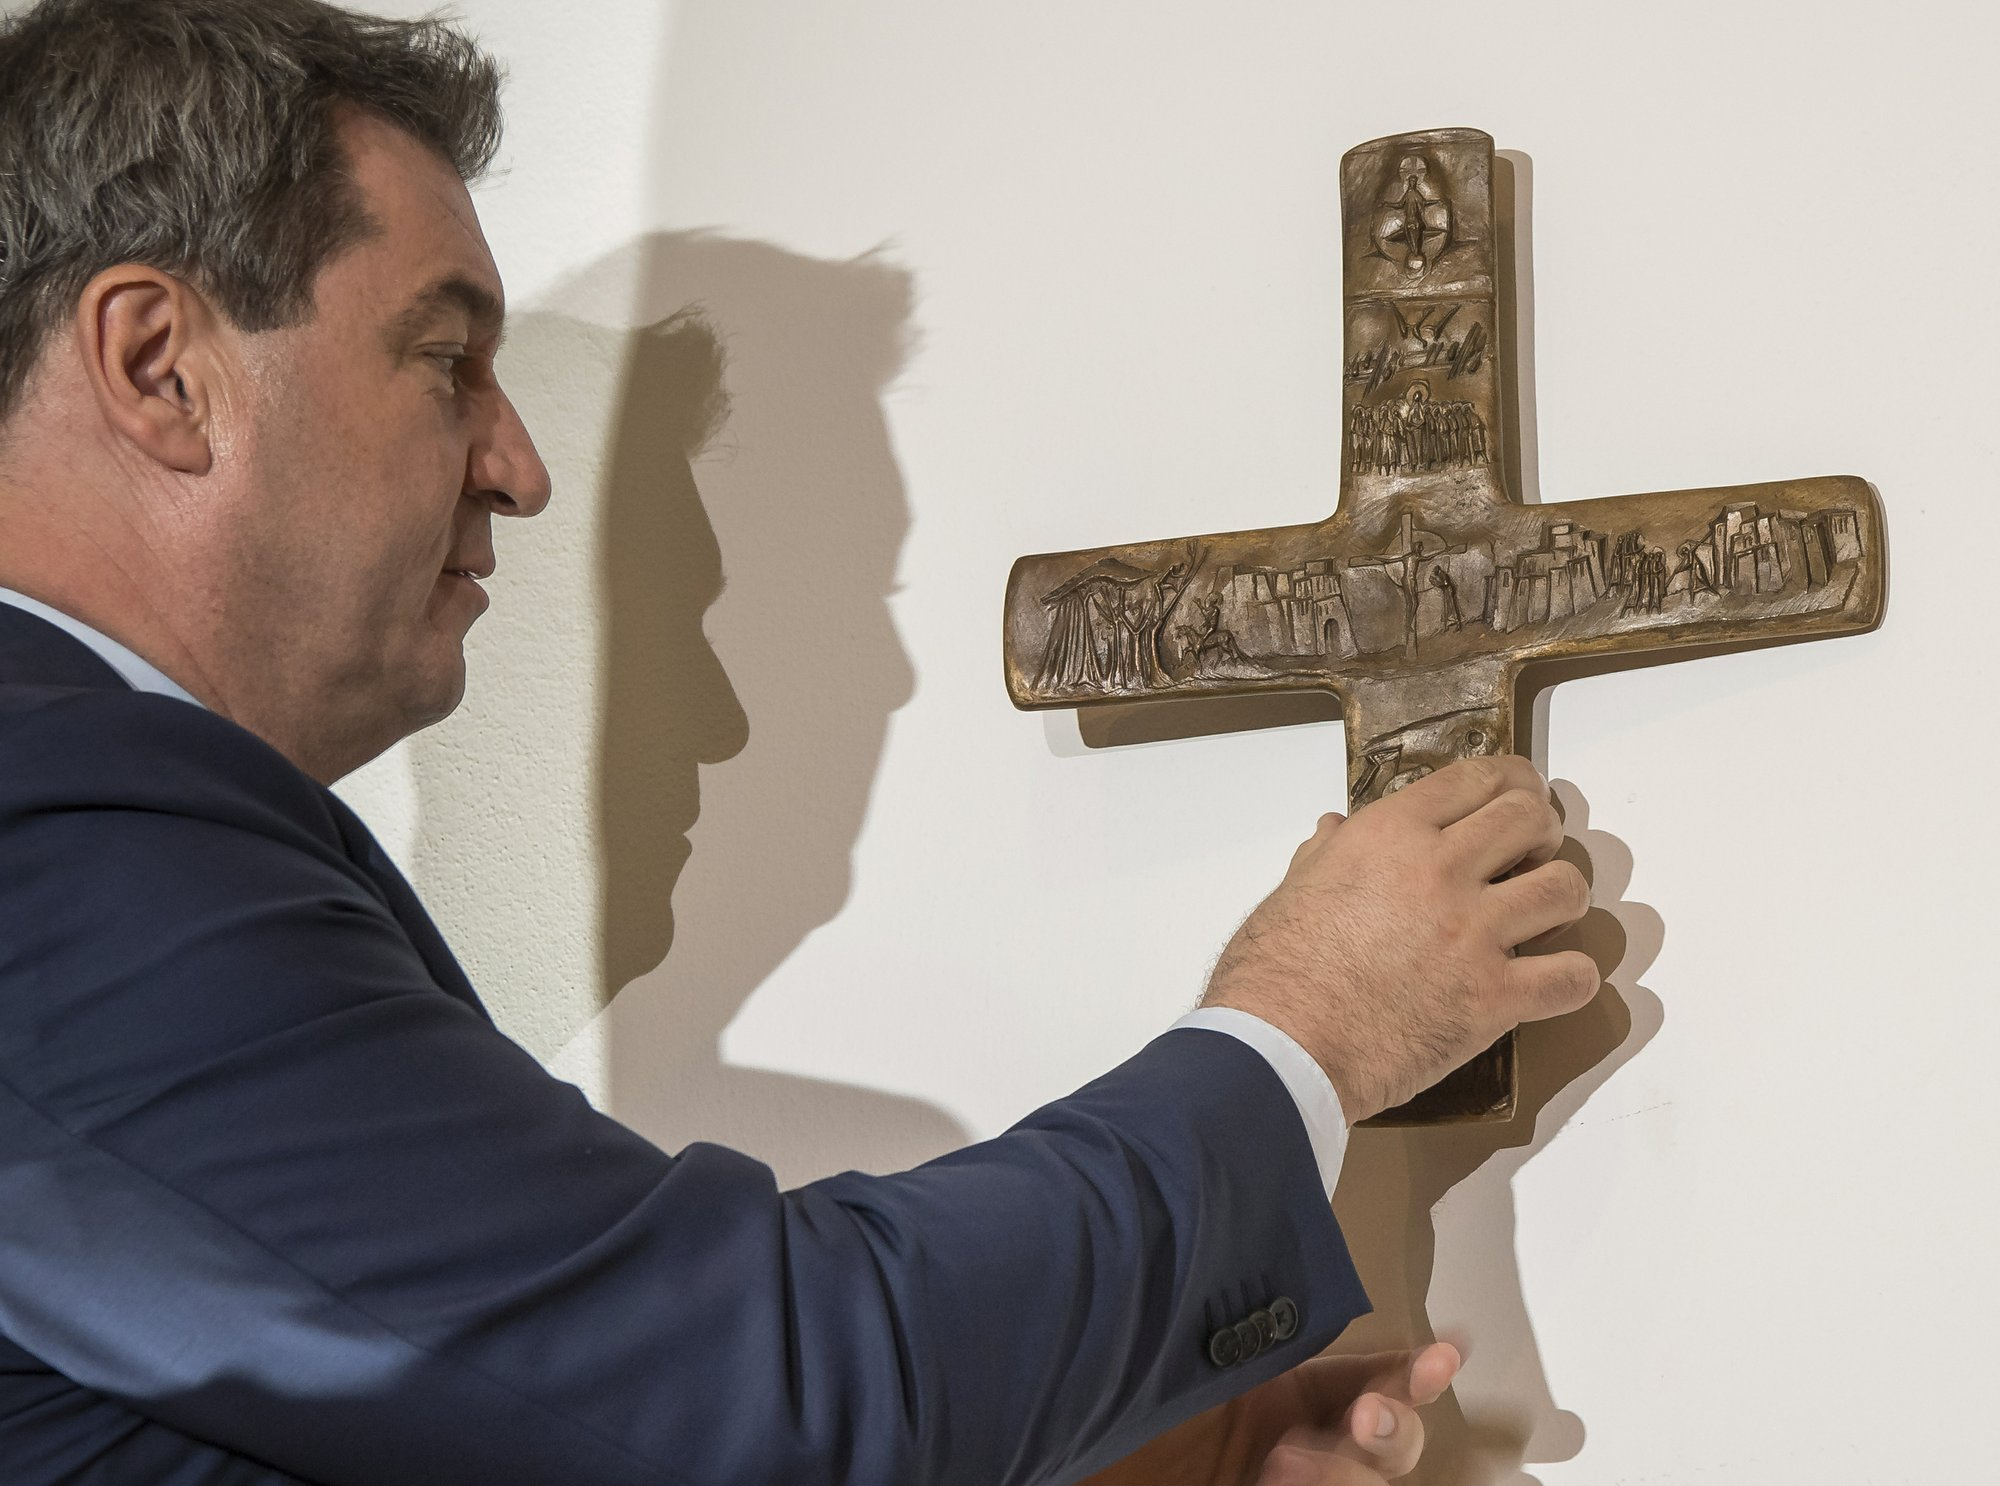 German state orders crosses mounted at government buildings